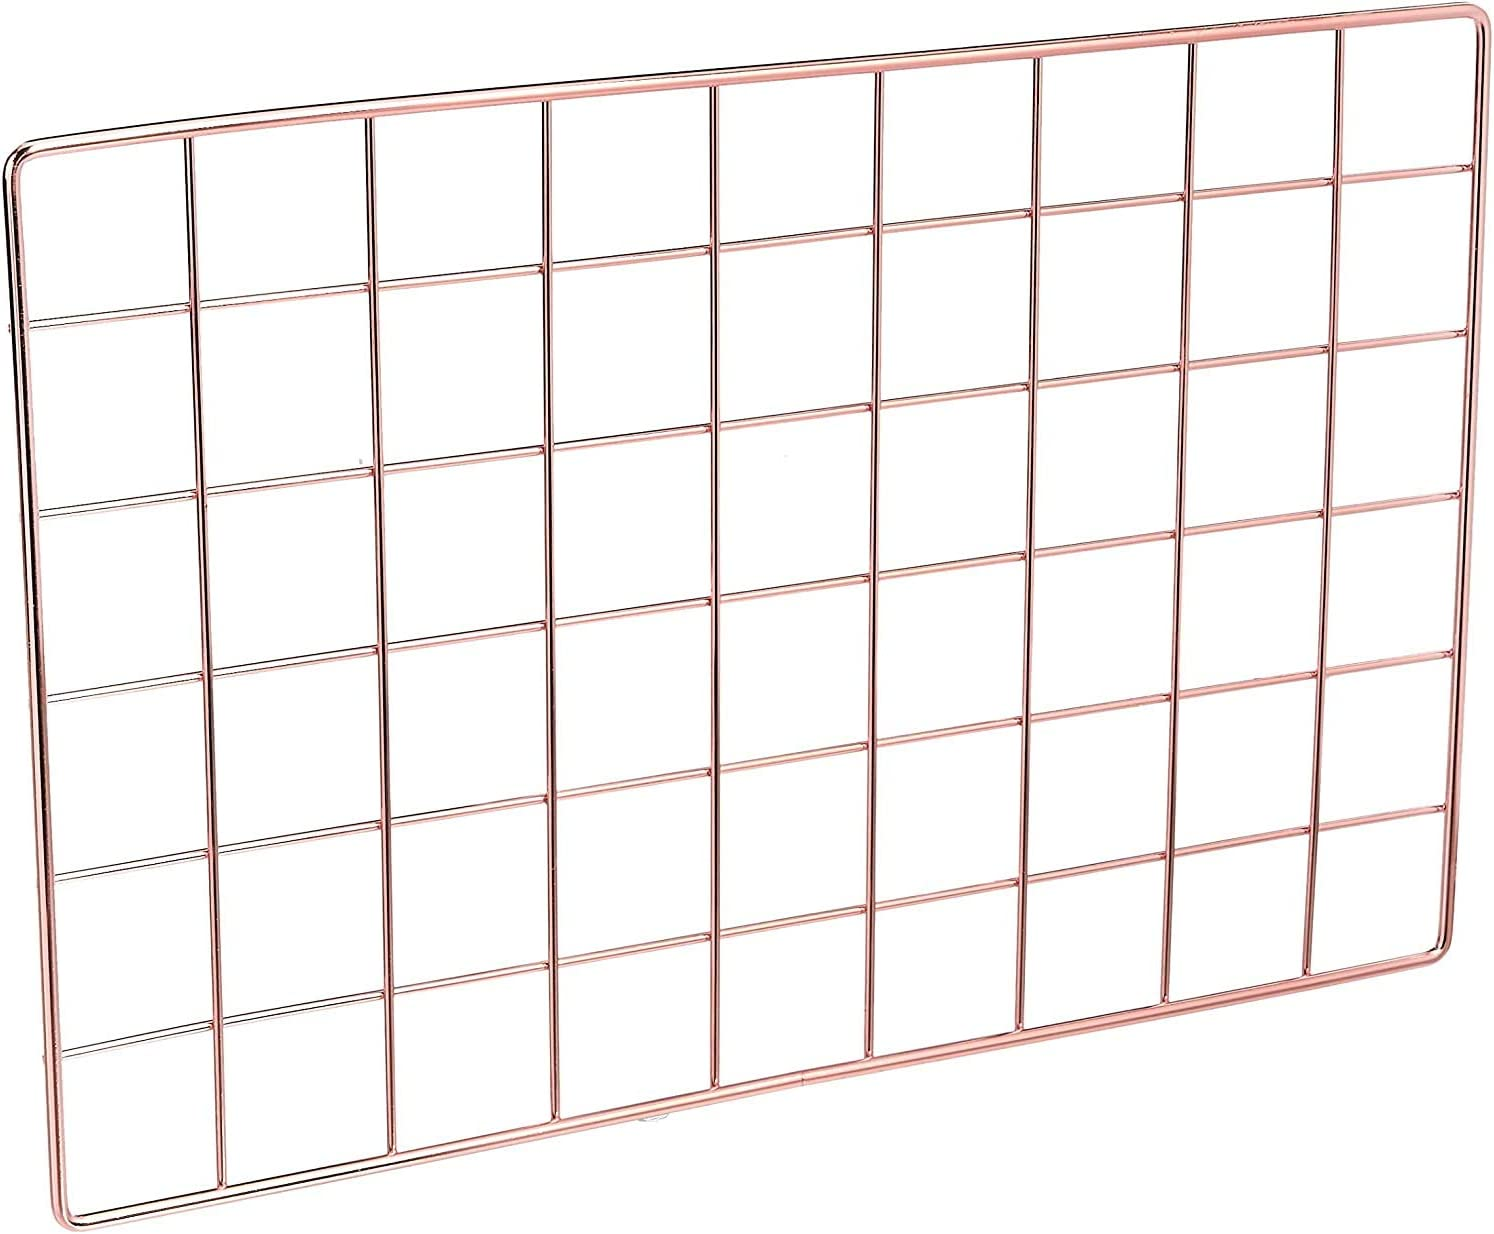 Afaris Wire Grid Panel(Only 1 Piece),Grid Photo Wall, Office Wall Organizer Ins Art Display for Bedroom, Living Room or Office, Rose Gold (Only 1 Grid Panel